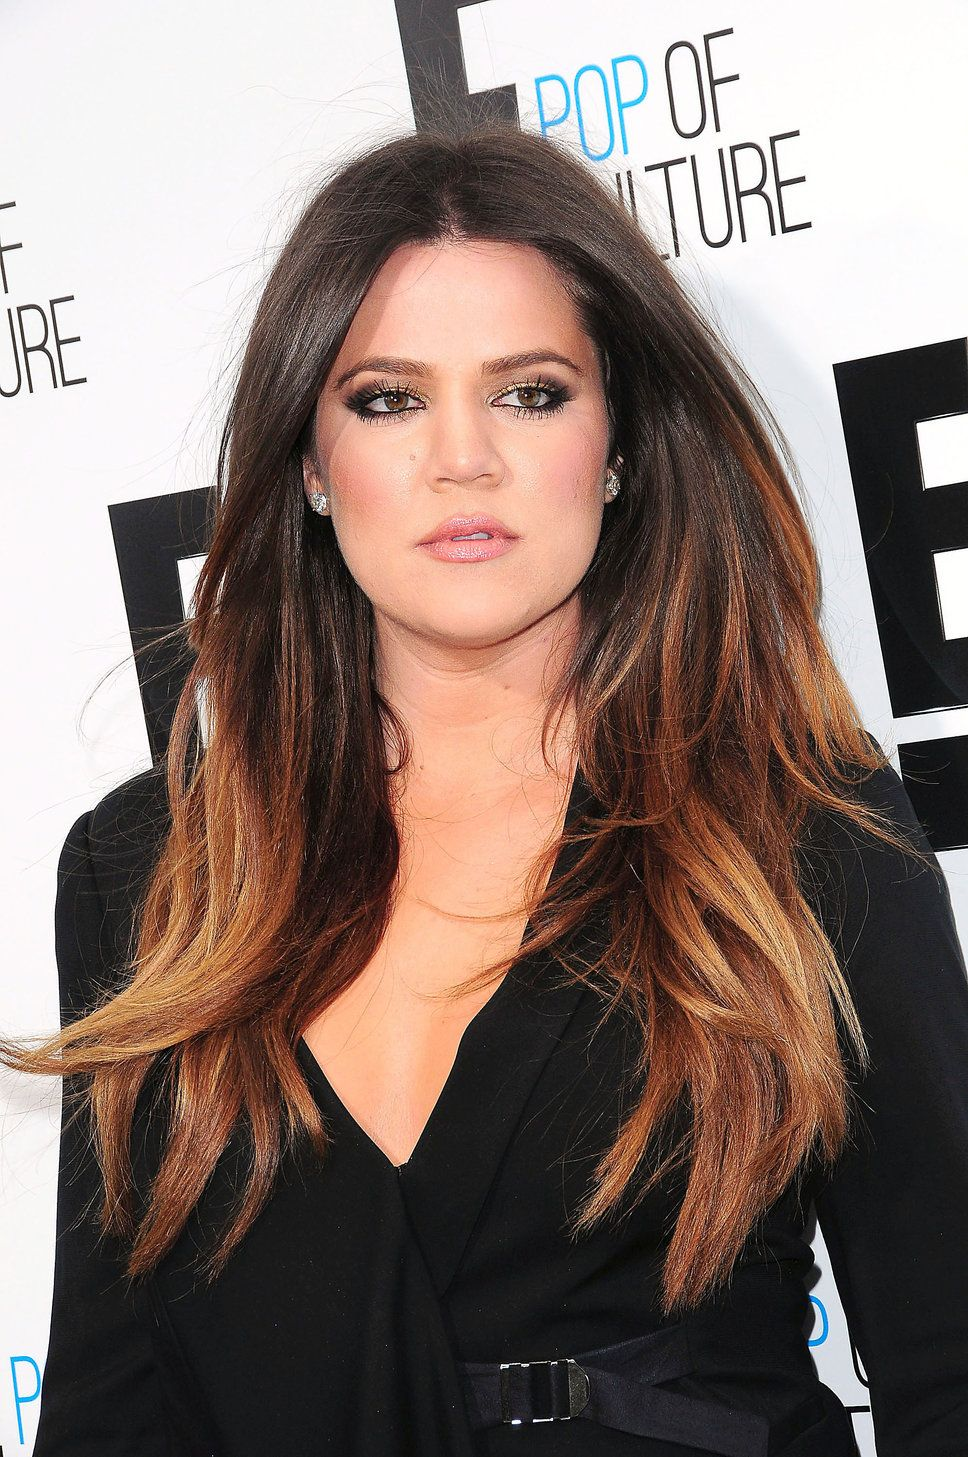 Stylish Hair Colors you Can Try | Khloe kardashian ombre, Khloe ...